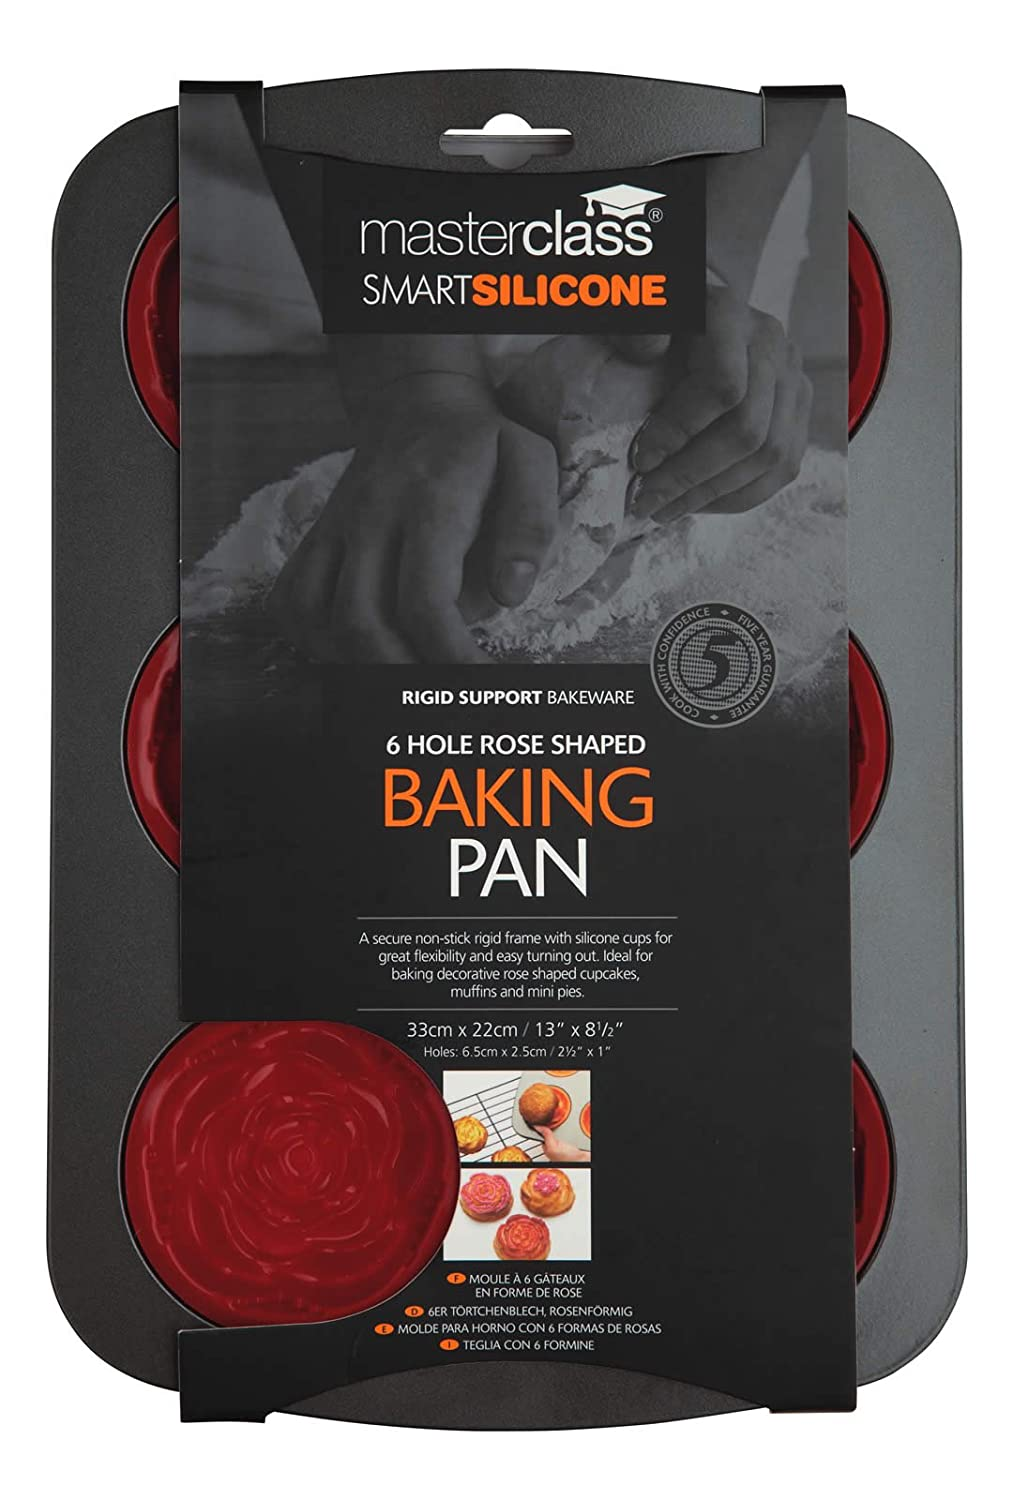 Amazon.com: Master Class Smart Silicone 32.5 x 22cm Rose Shaped Bake Pan With Non-stick Frame, 6 Hole: Kitchen & Dining